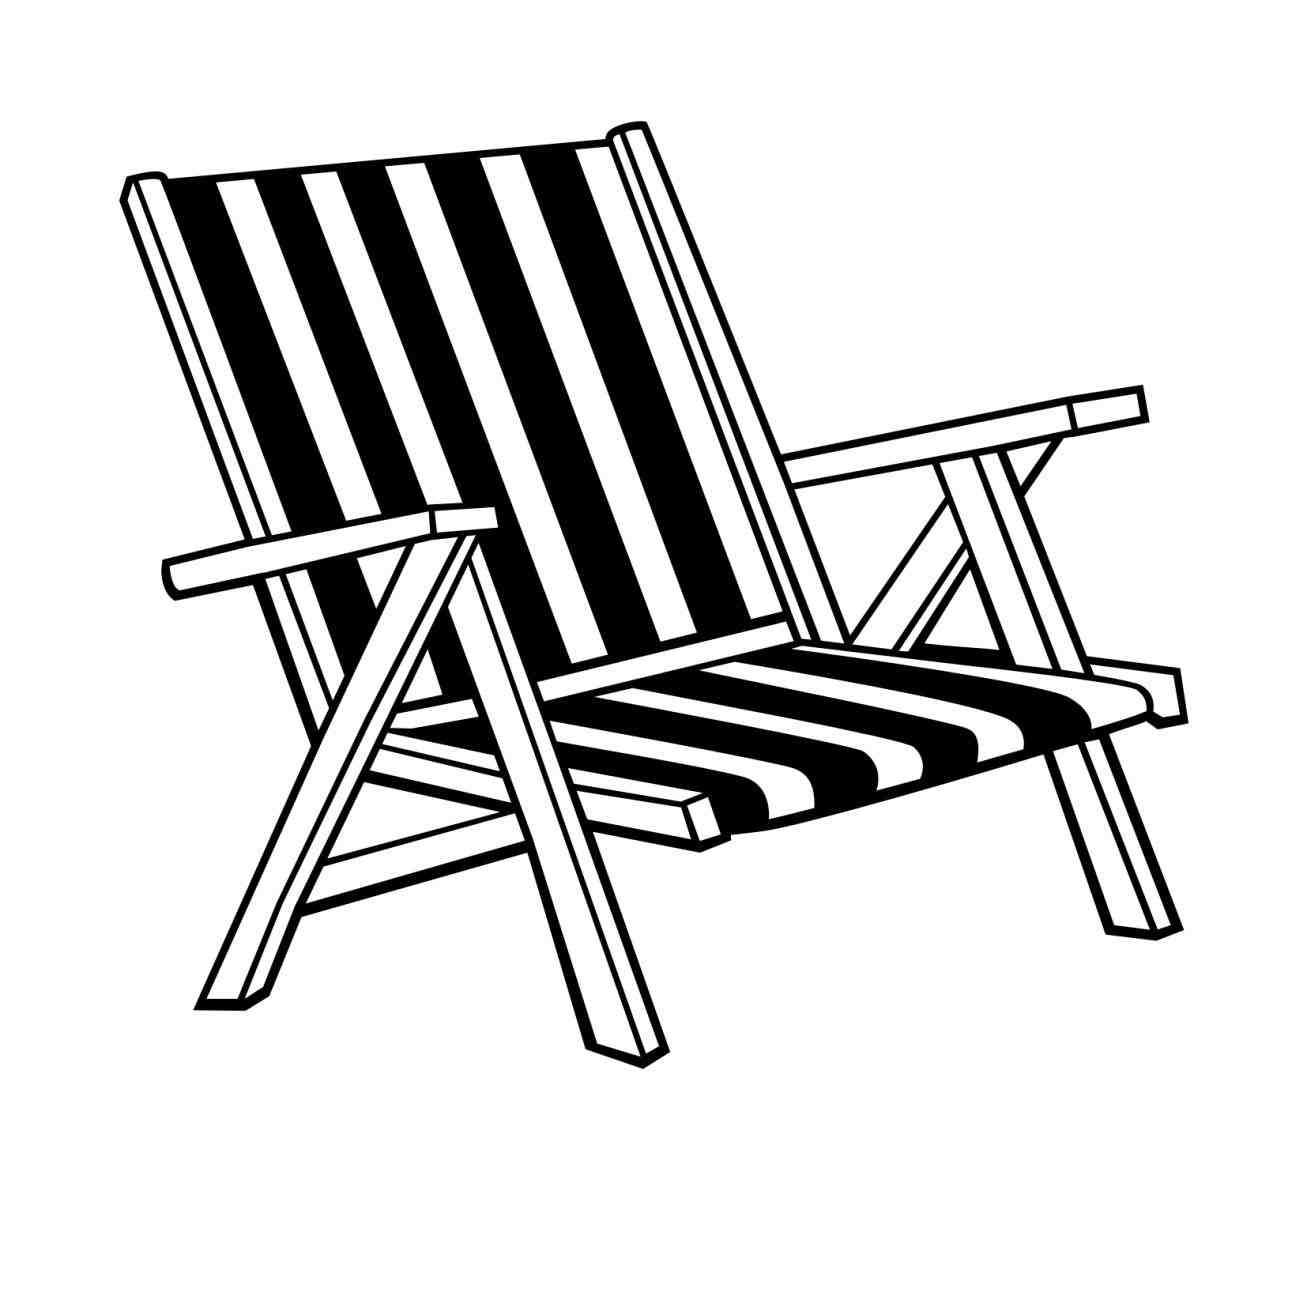 double adirondack chairs with umbrella tall drafting office lawn chair drawing at getdrawings free for personal